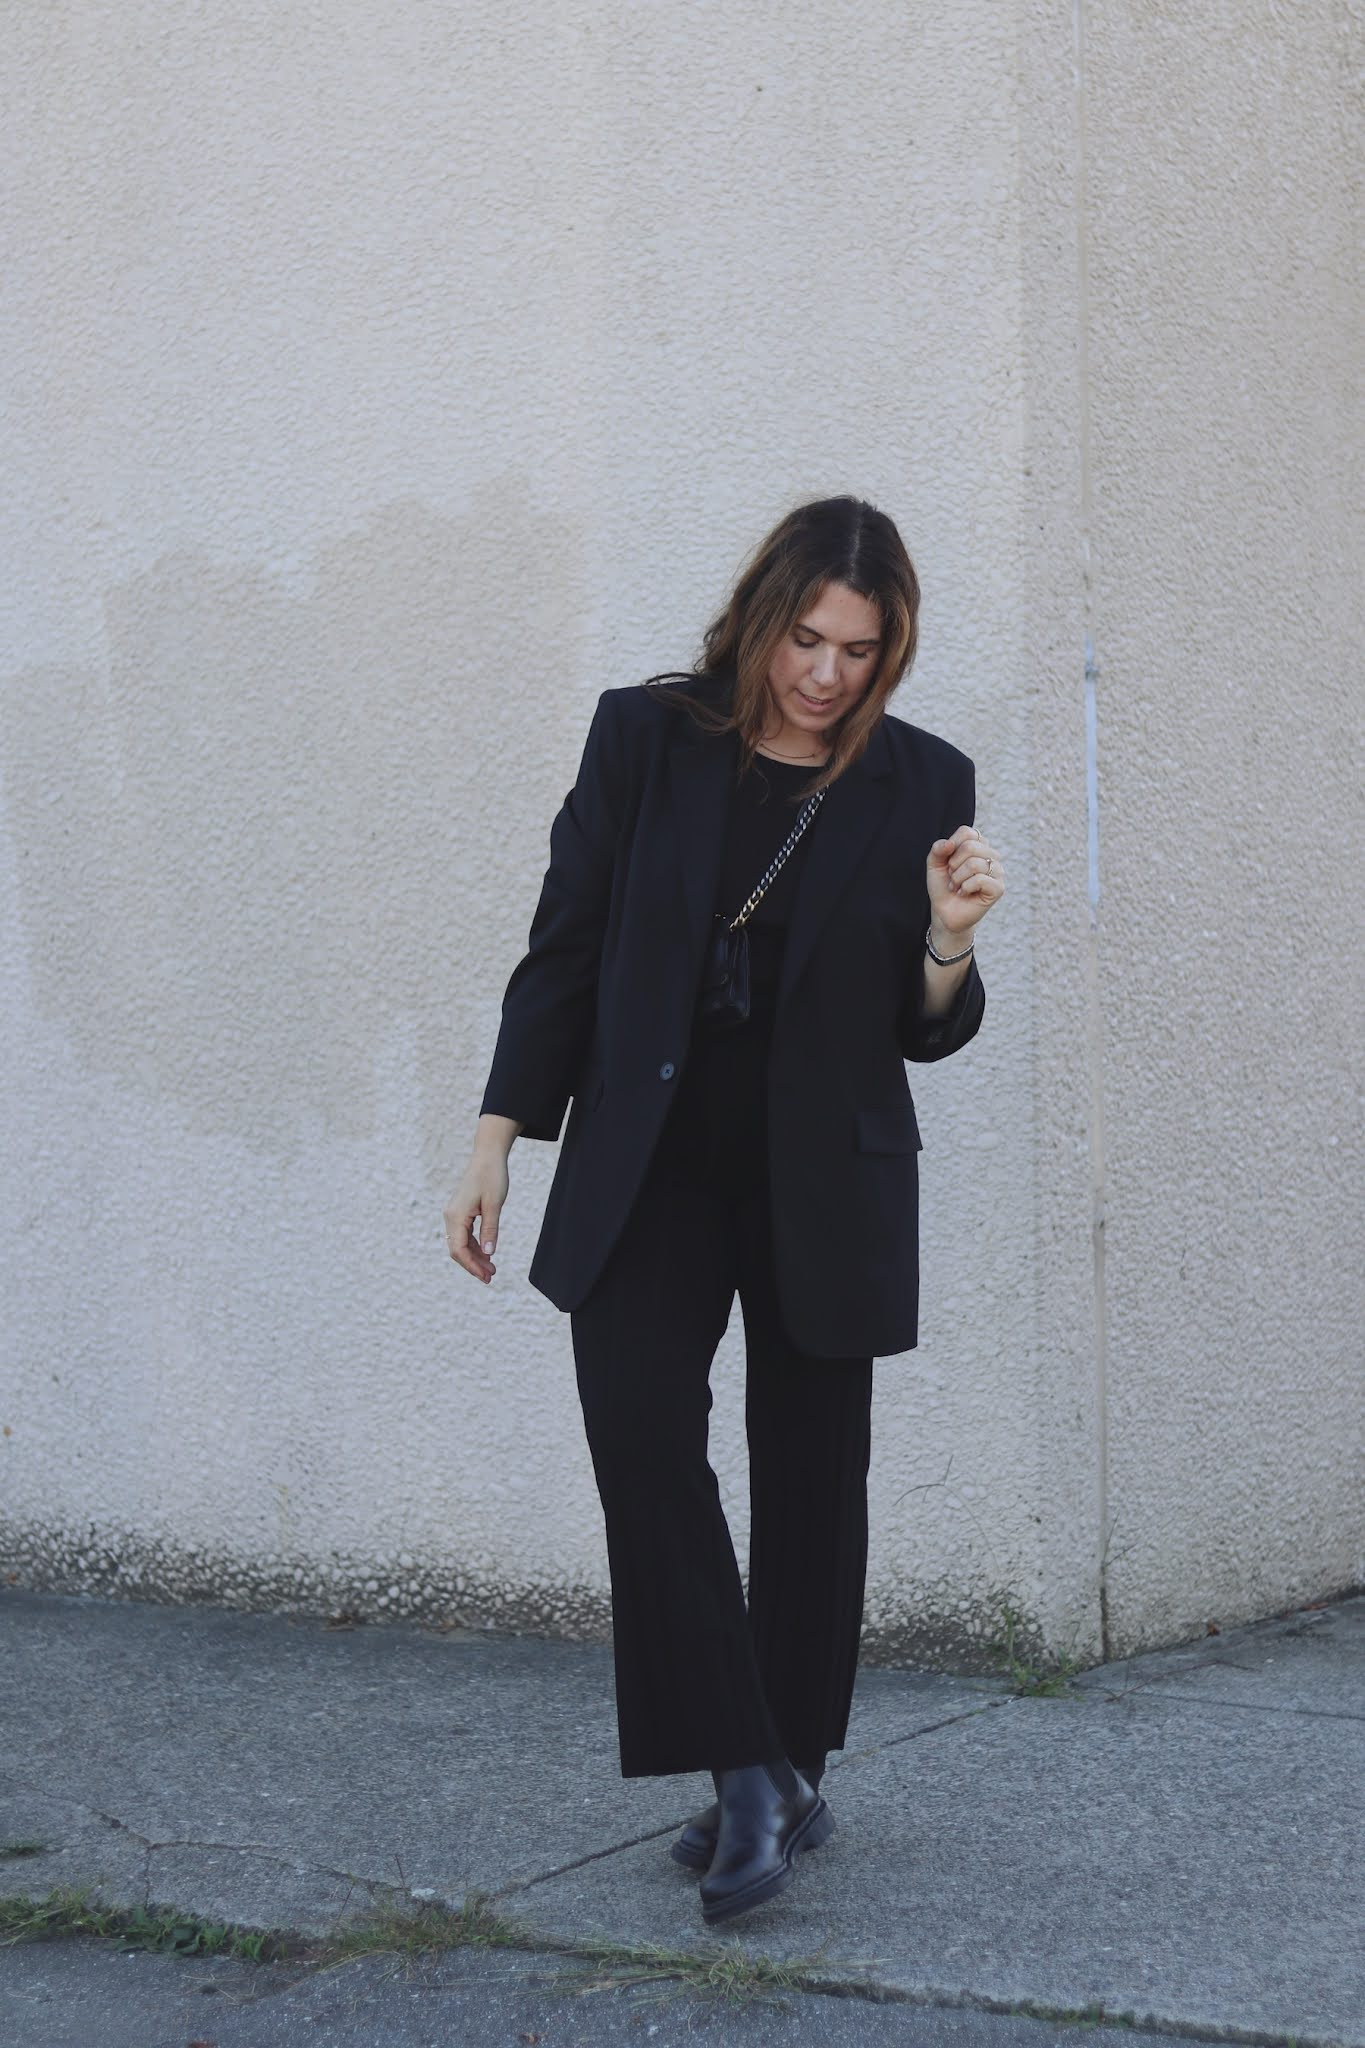 fall outfit hm knit pants aritzia agency blazer dr martens chelsea boots outfit